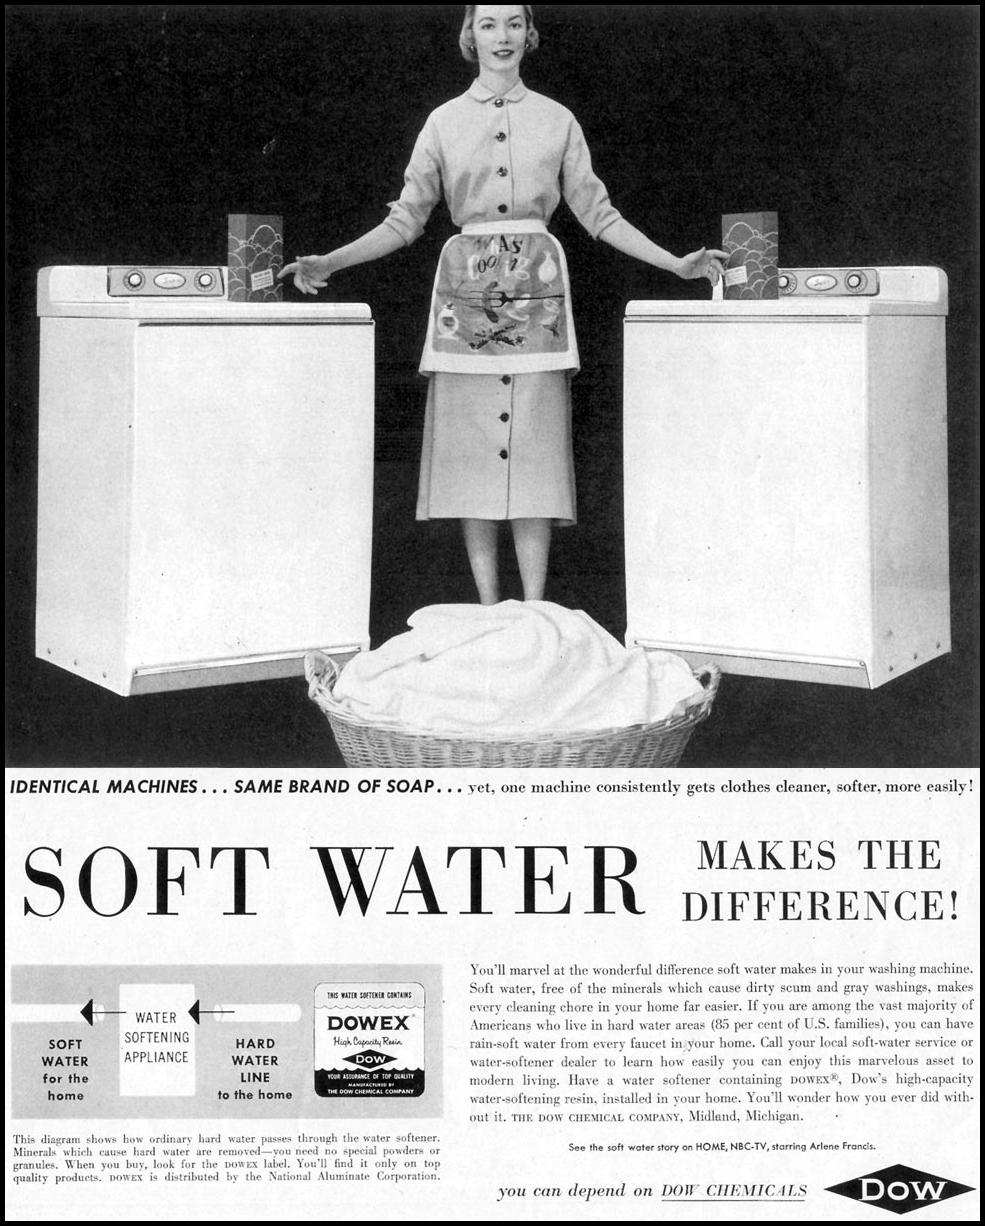 DOW CHEMICALS SATURDAY EVENING POST 04/09/1955 p. 81